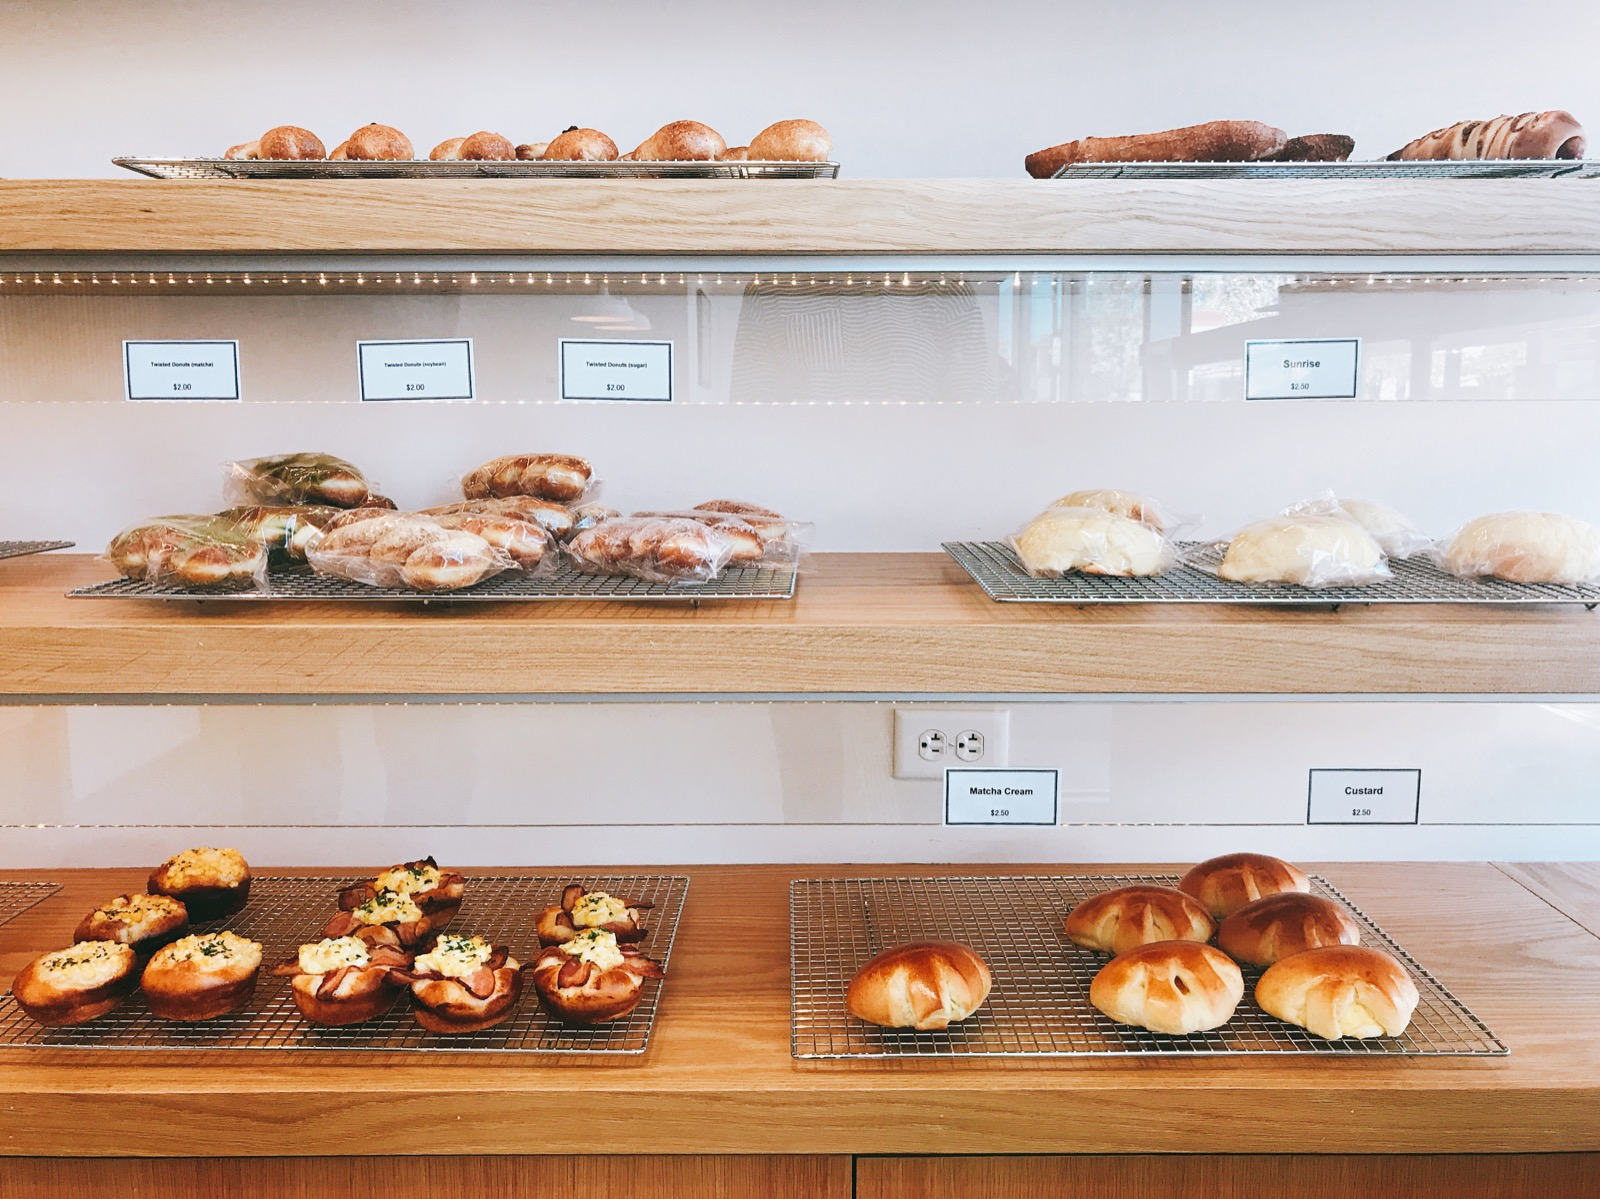 Old South Pearl's New Japanese Bakery Is the Best Thing Since Sliced Bread